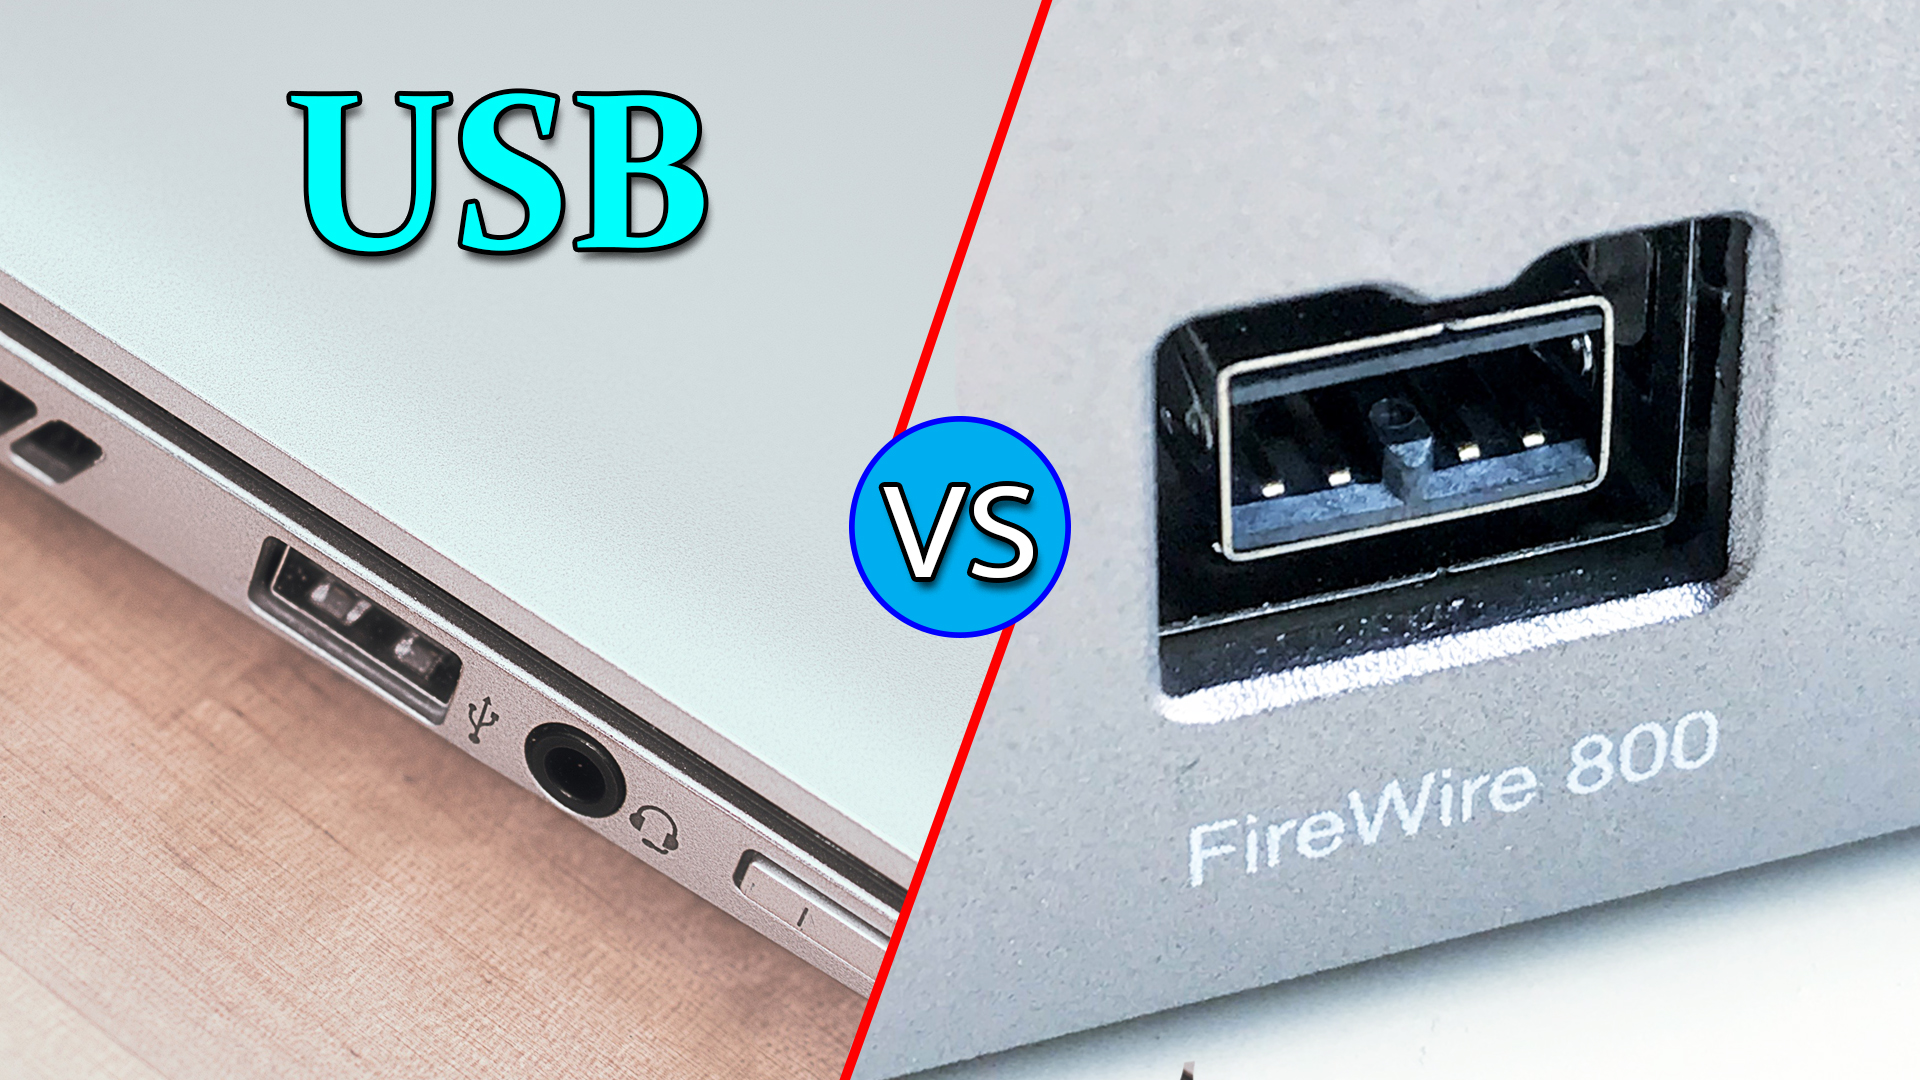 USB Vs FireWire: What are the differences?